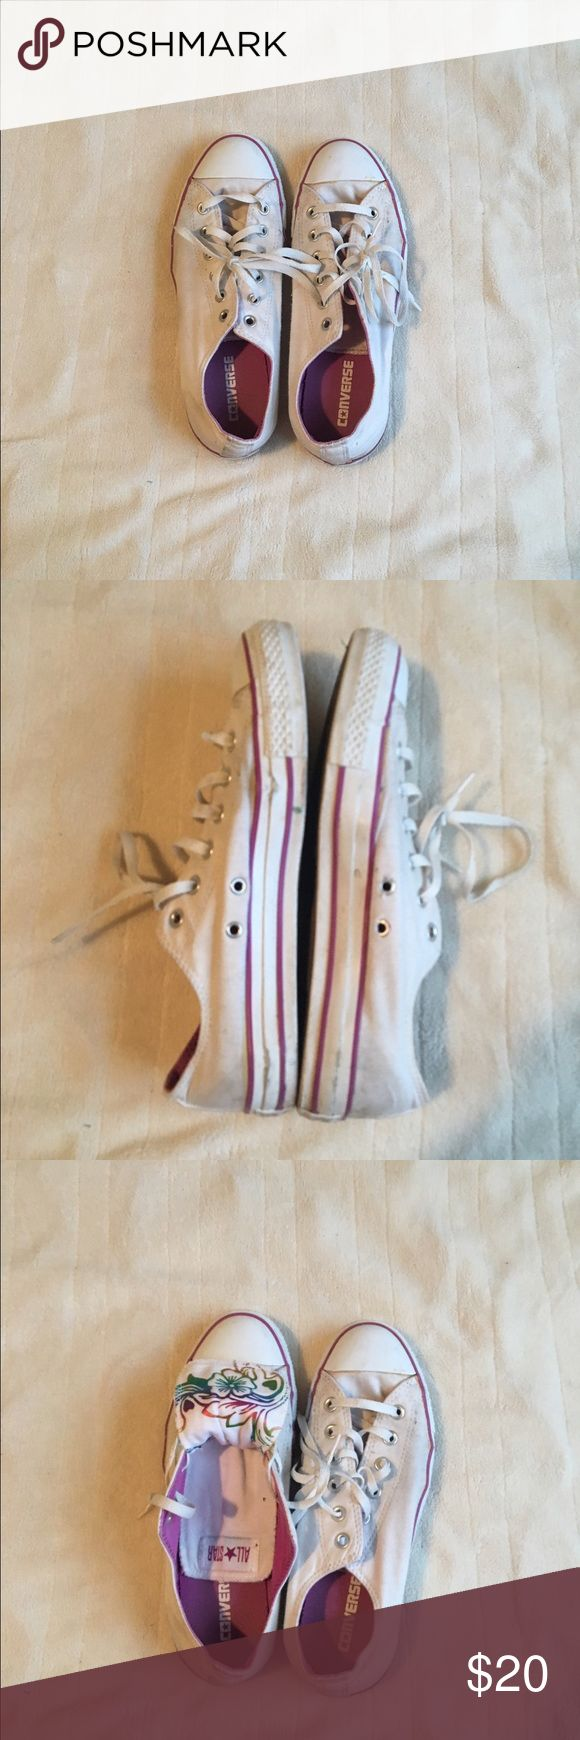 White and Pink Double Flap Converse Size 10 Women White and pink tropical double flap converse, used. Did not go in washer or dryer, hand cleaned Converse Shoes Sneakers